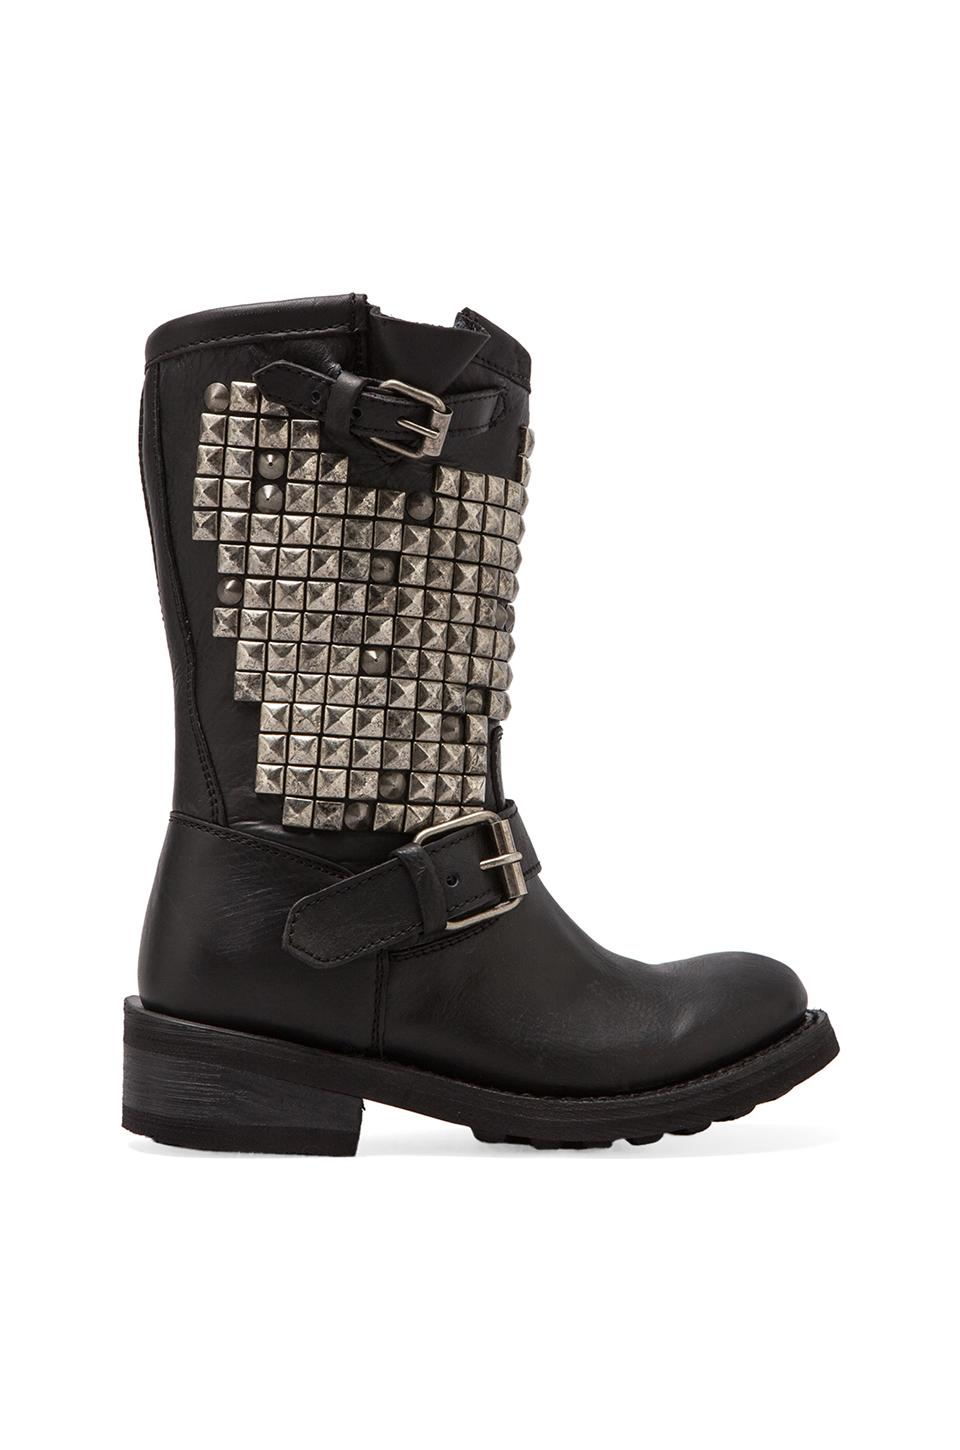 Ash Trash Studded Boot in Black/Tarnish Studs